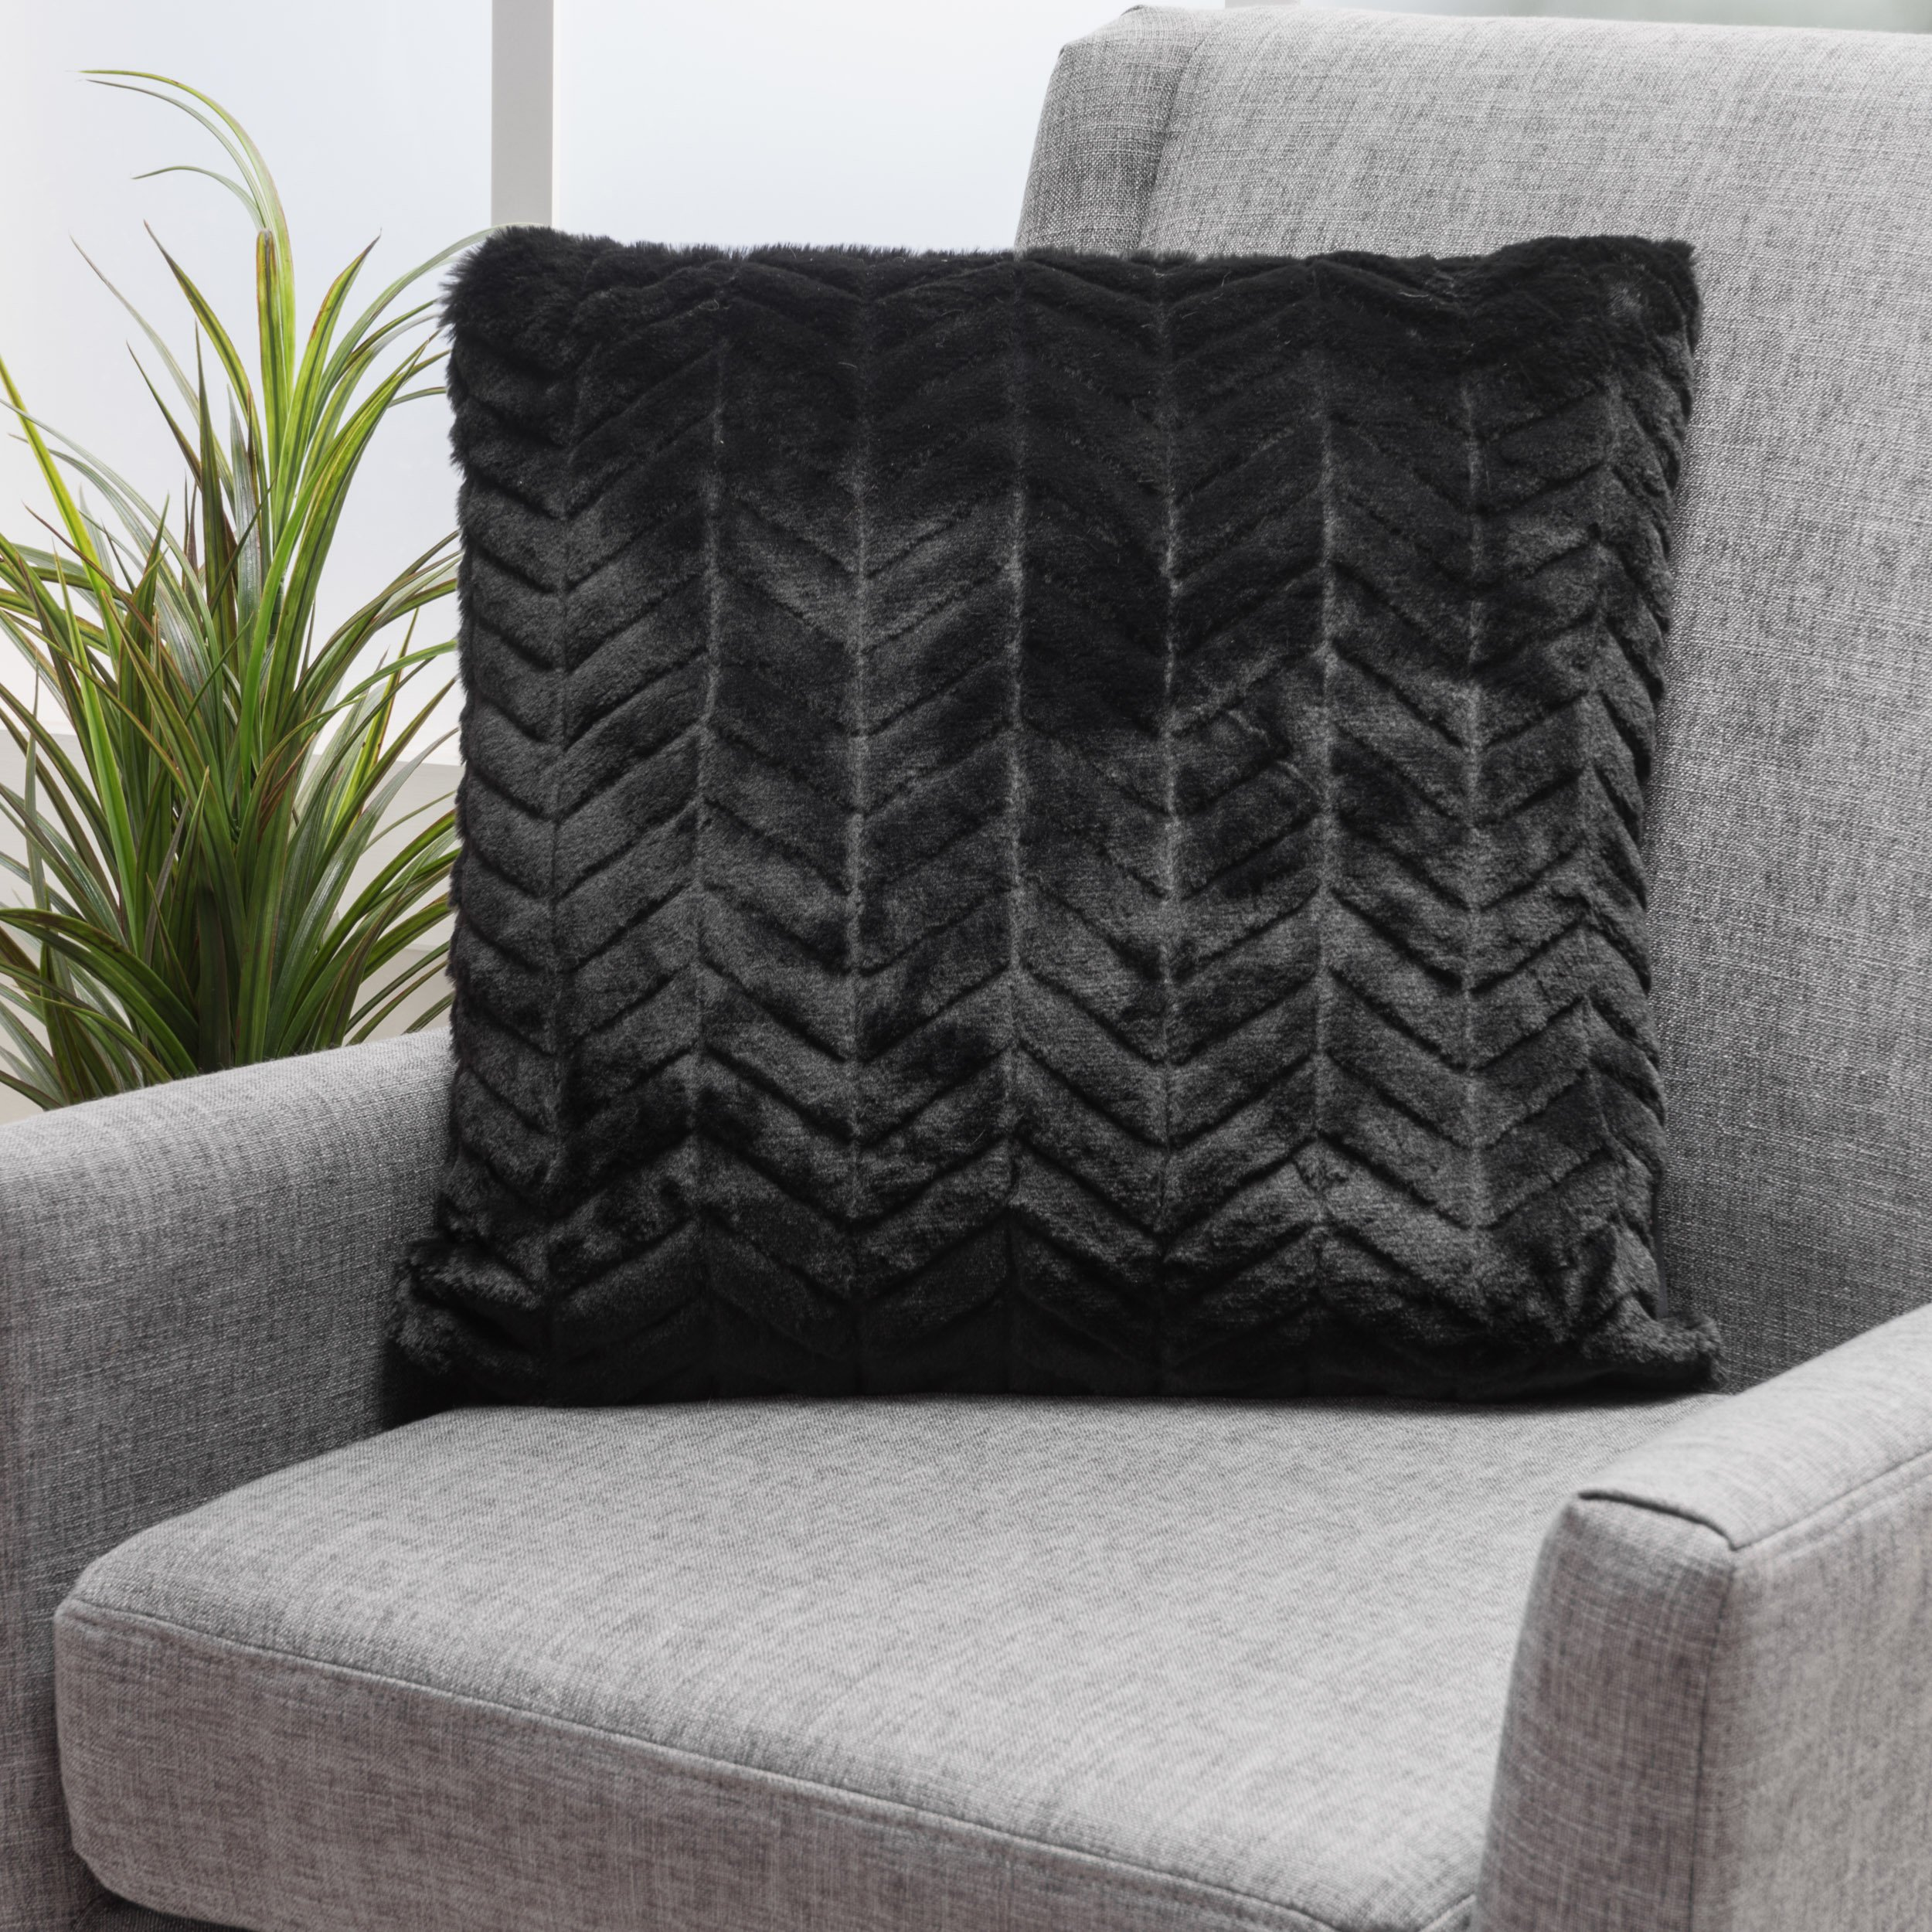 CDM product Christopher Knight Home Ellison Black Decorative Faux Fur Fabric Throw Pillow (Set of 2) | Ideal for The Living Room or Bedroom | Plush Texture big image